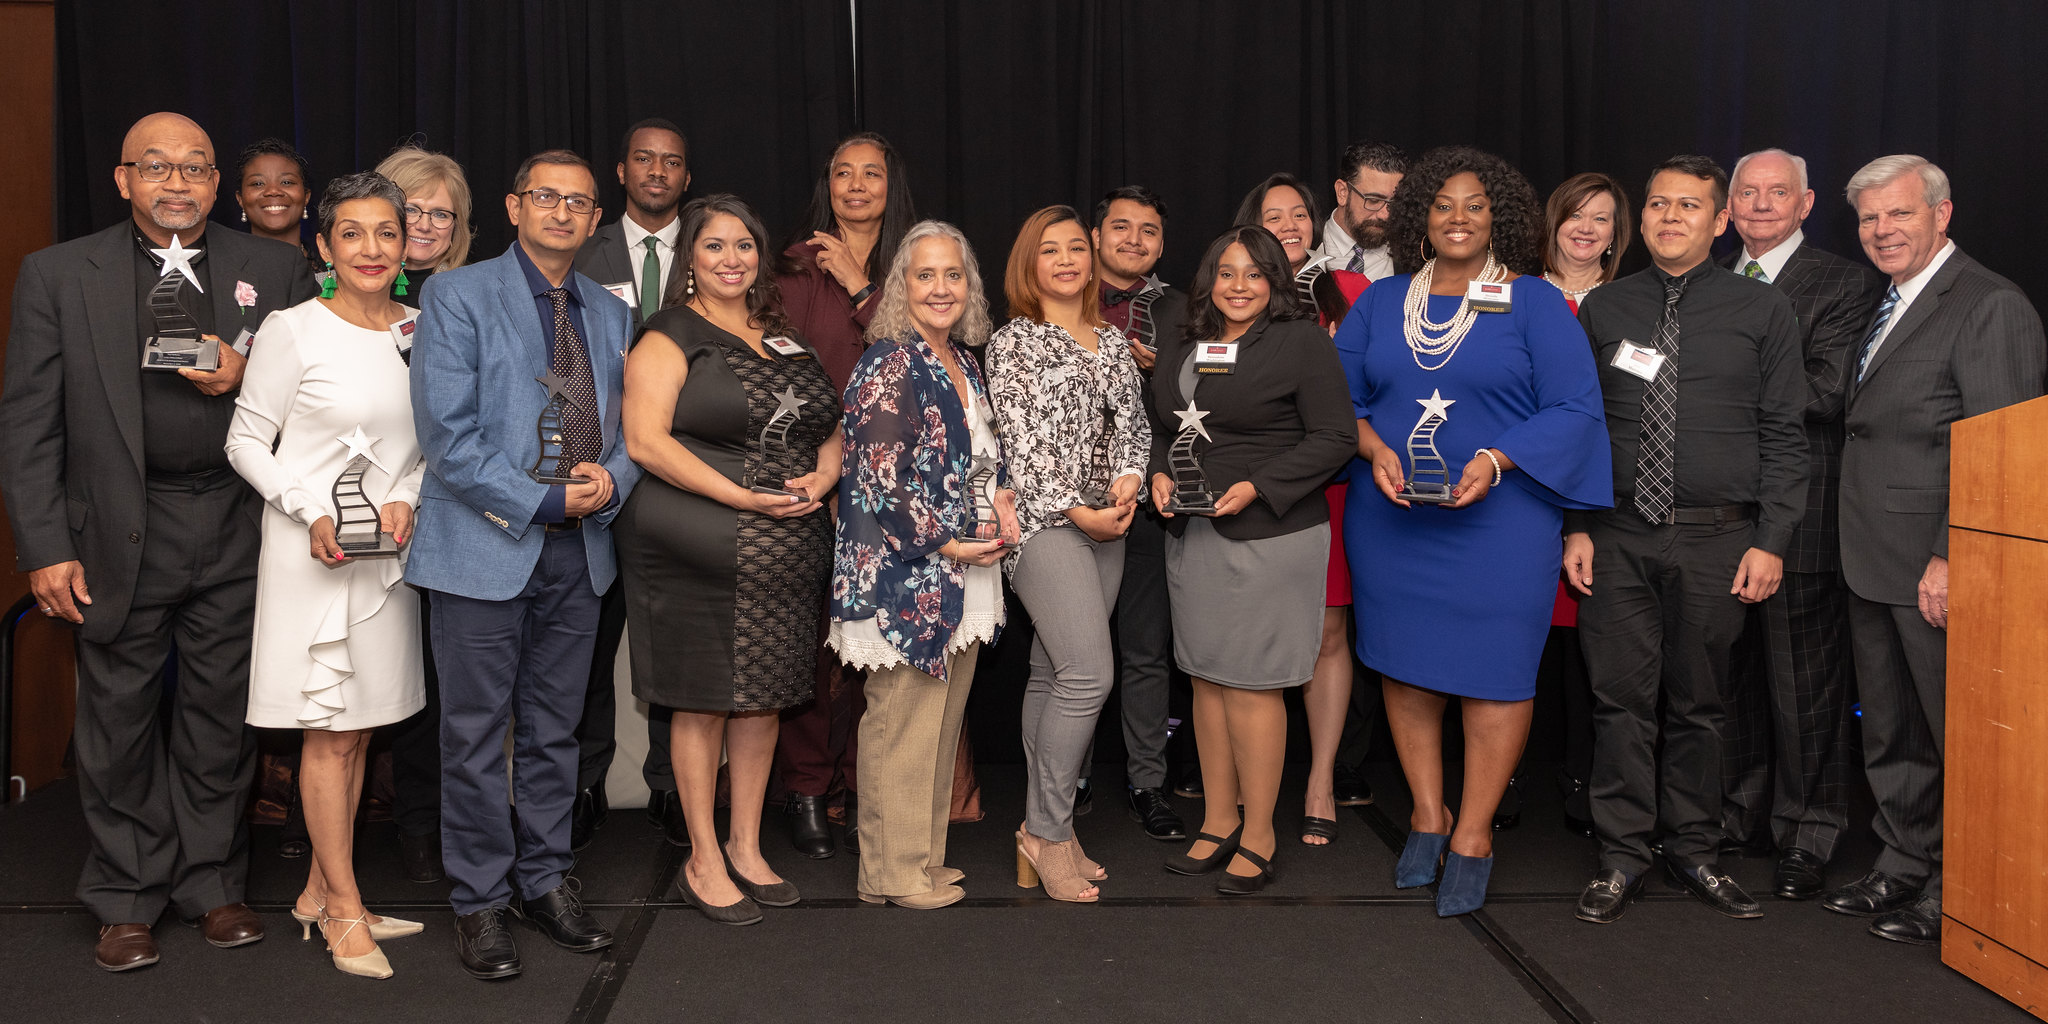 2018 Alumni Award Honorees with Dr. May and Dr. Wilkins